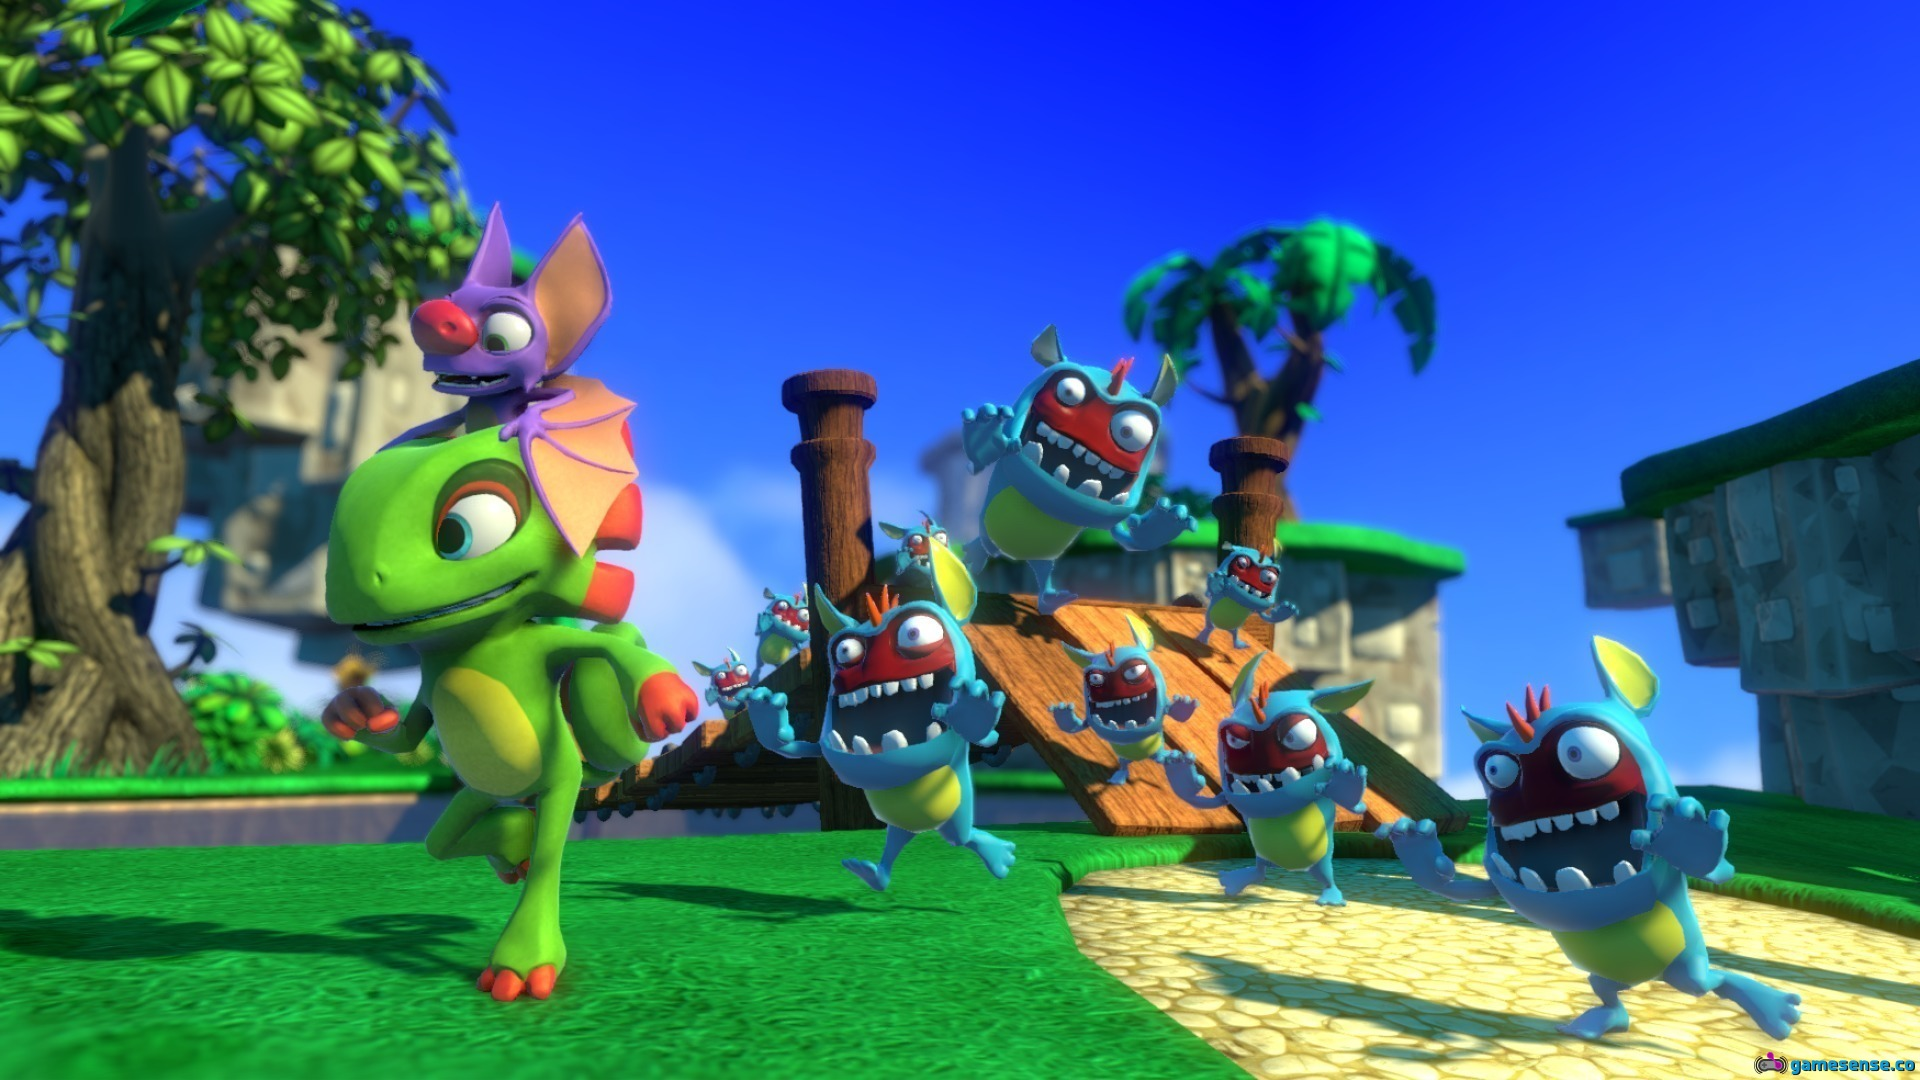 Huge Yooka-Laylee Patch Finally Comes to Consoles